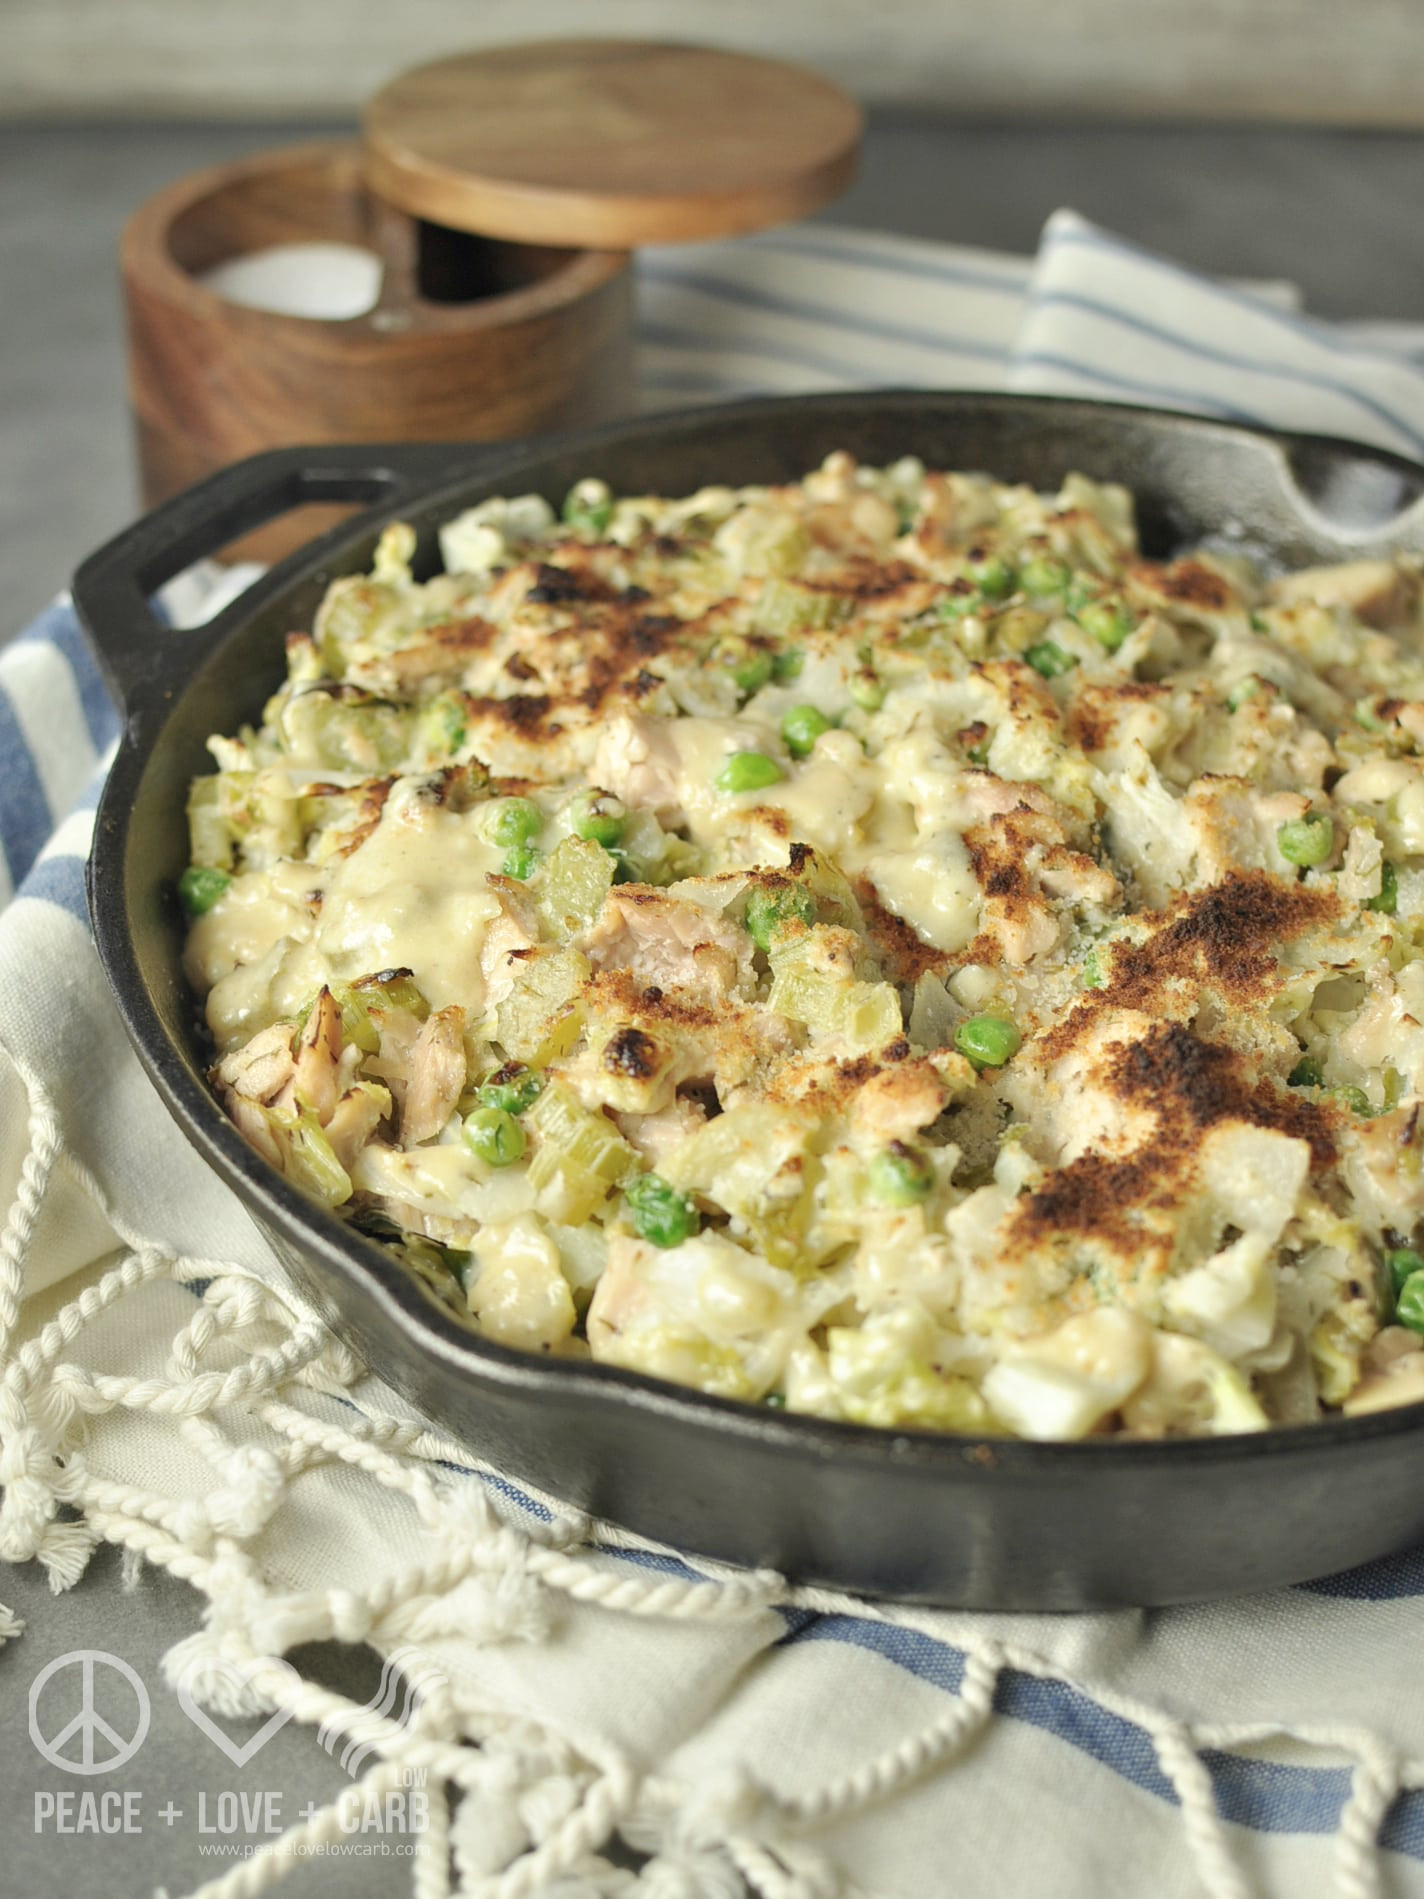 Low Carb Casserole Recipes  Cabbage Noodle Low Carb Tuna Casserole Low Carb Gluten Free